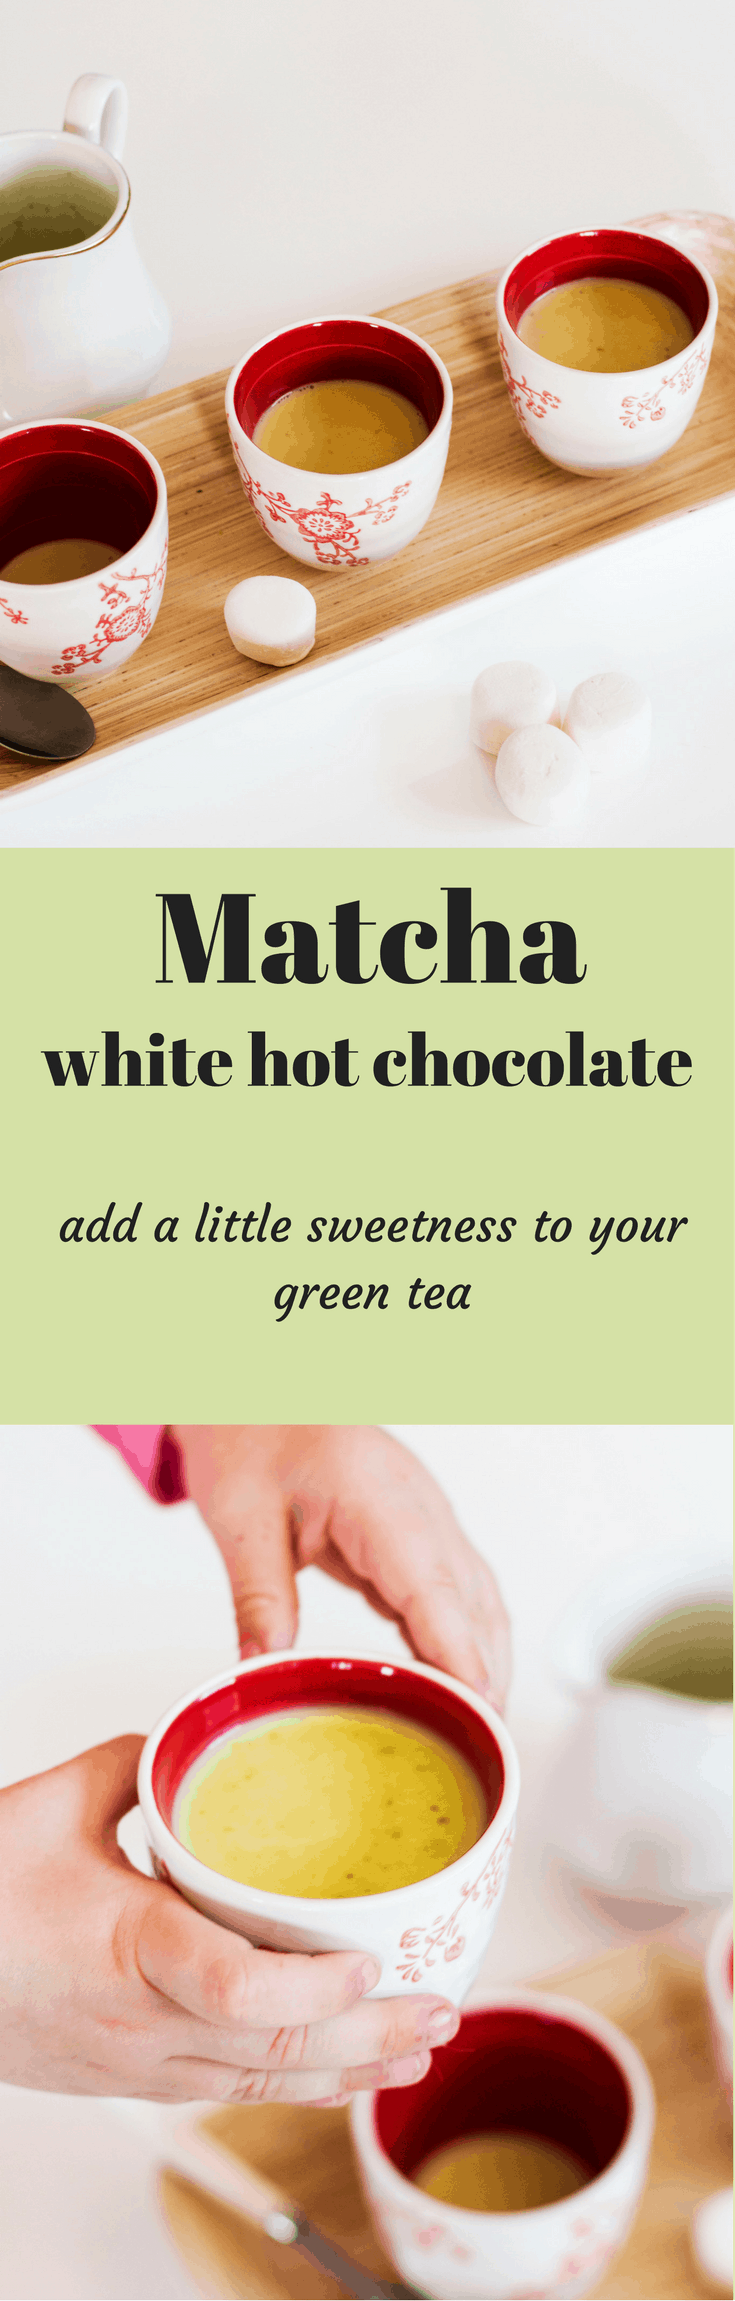 White Matcha Hot Chocolate. Add a little sweet to your matcha. Perfect green color for a Halloween treat without food coloring